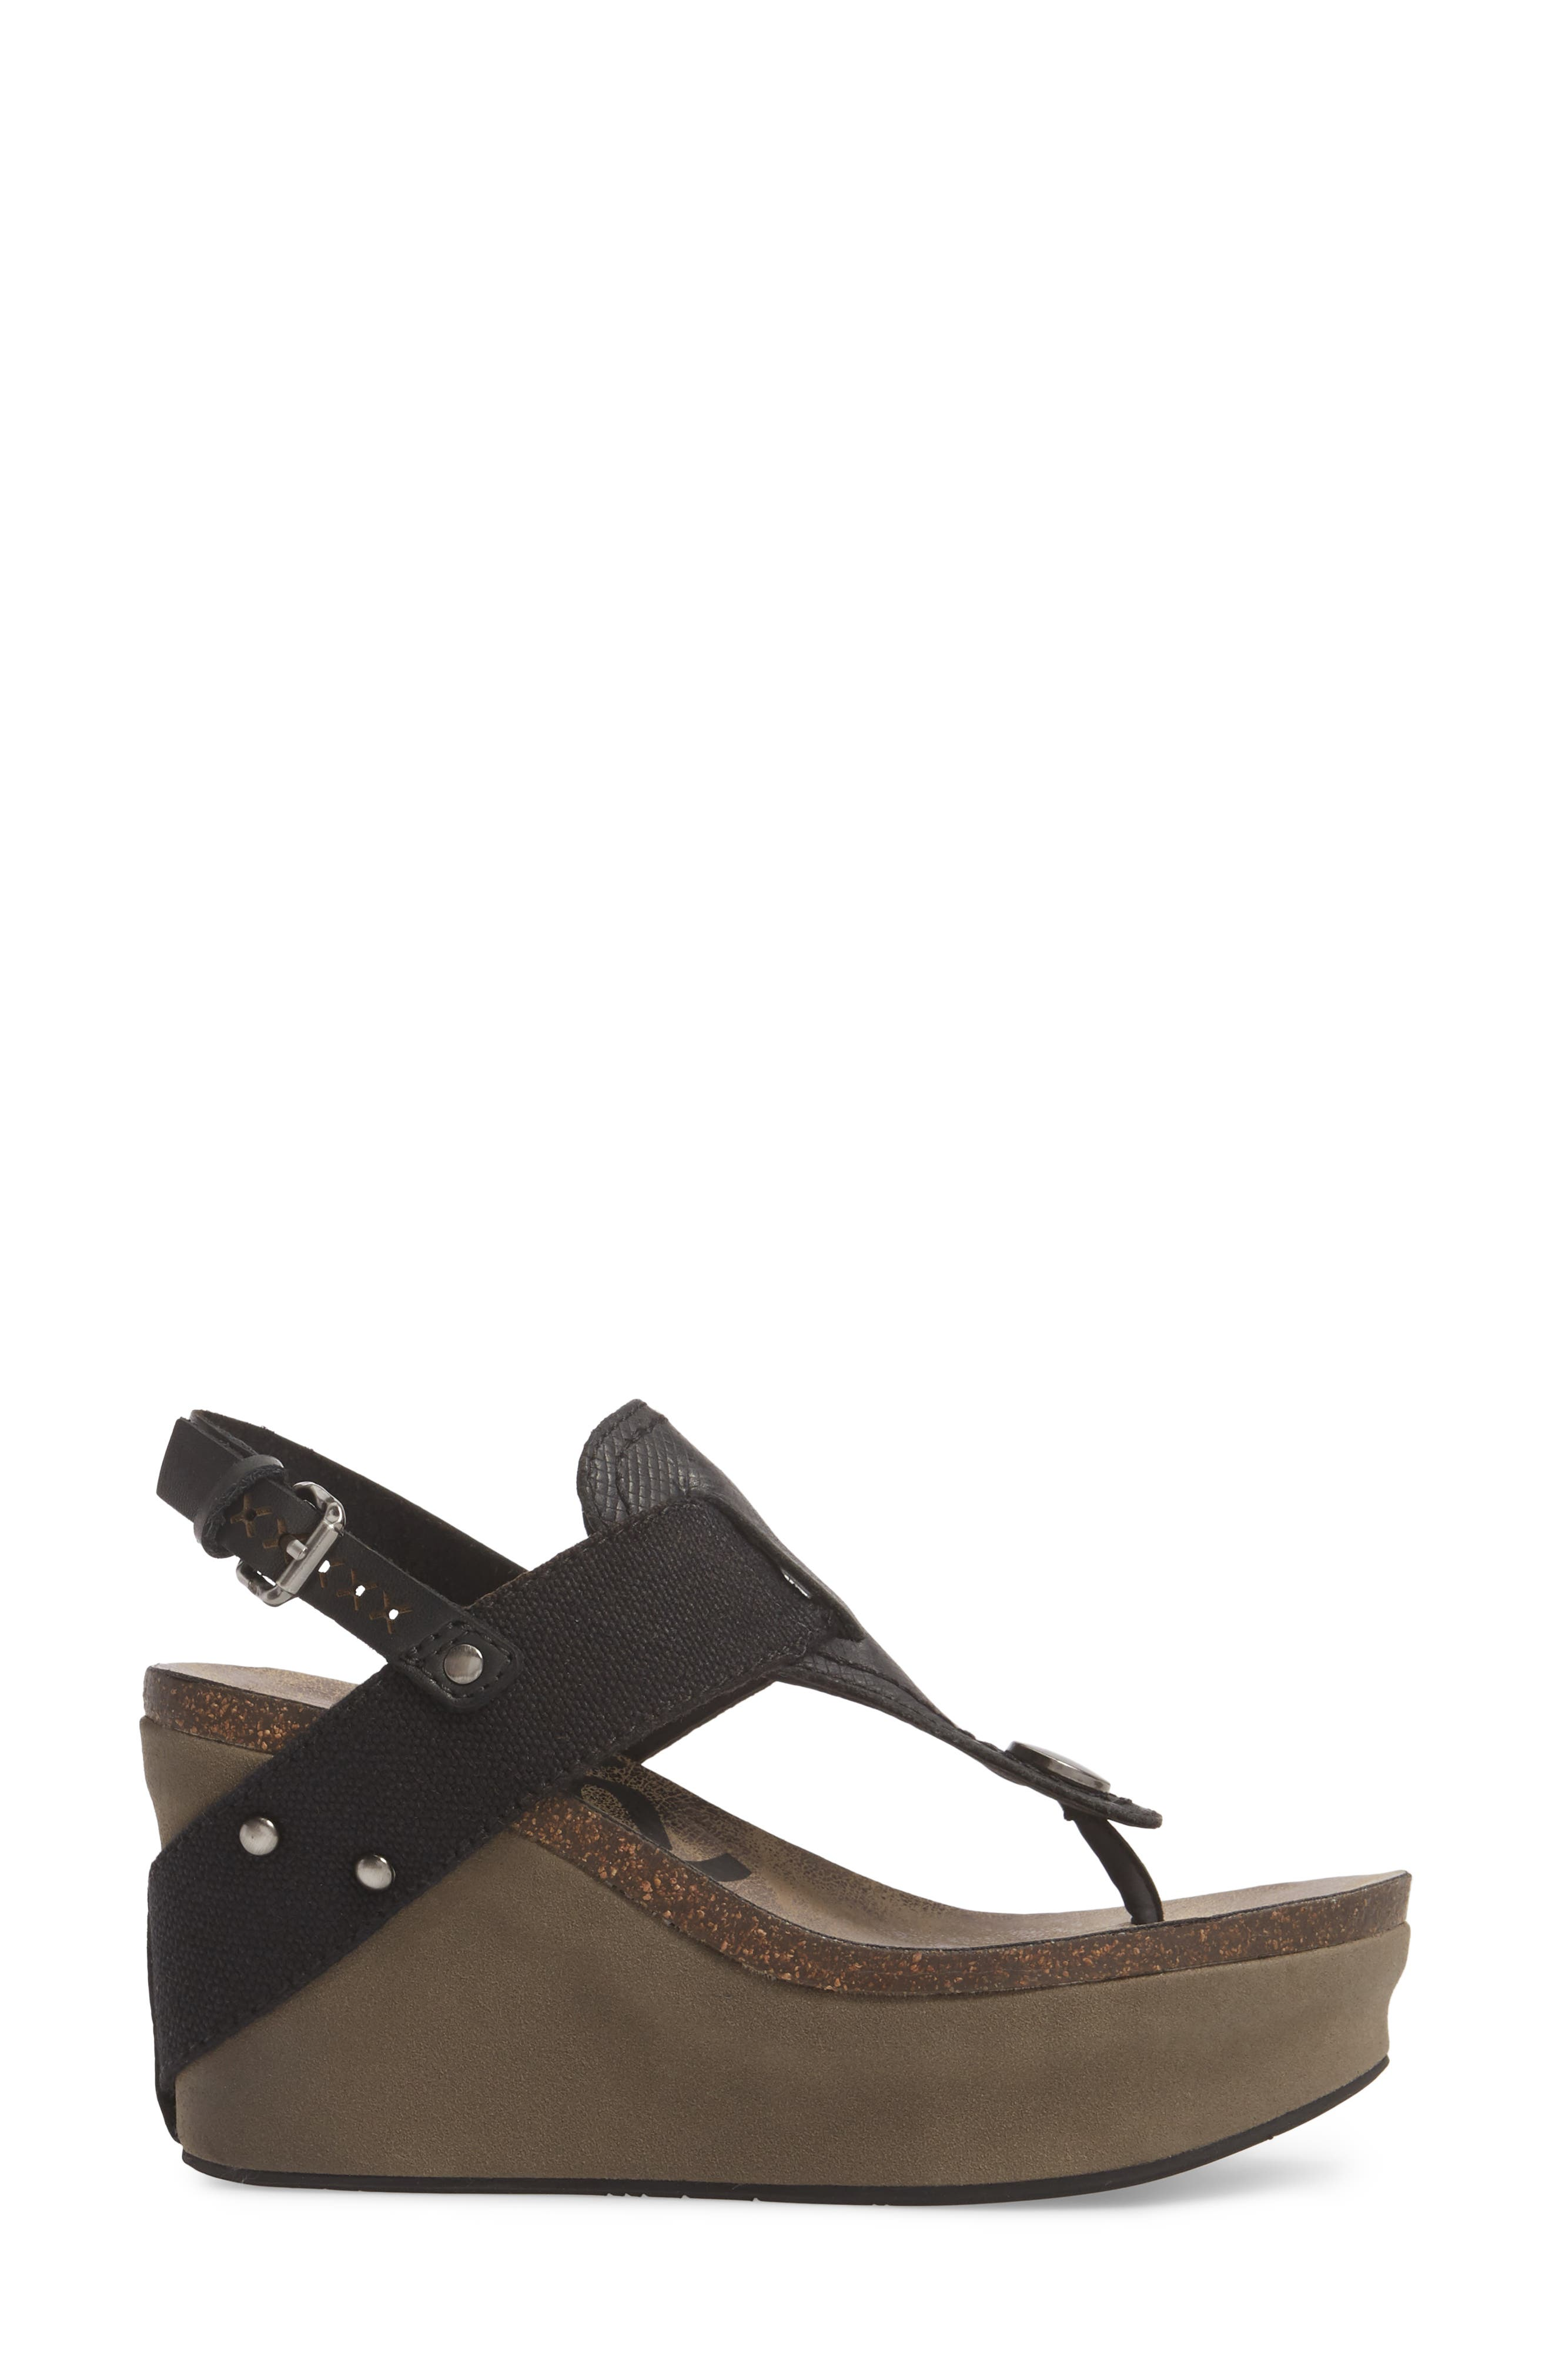 Joyride Wedge Sandal,                             Alternate thumbnail 3, color,                             Black Leather